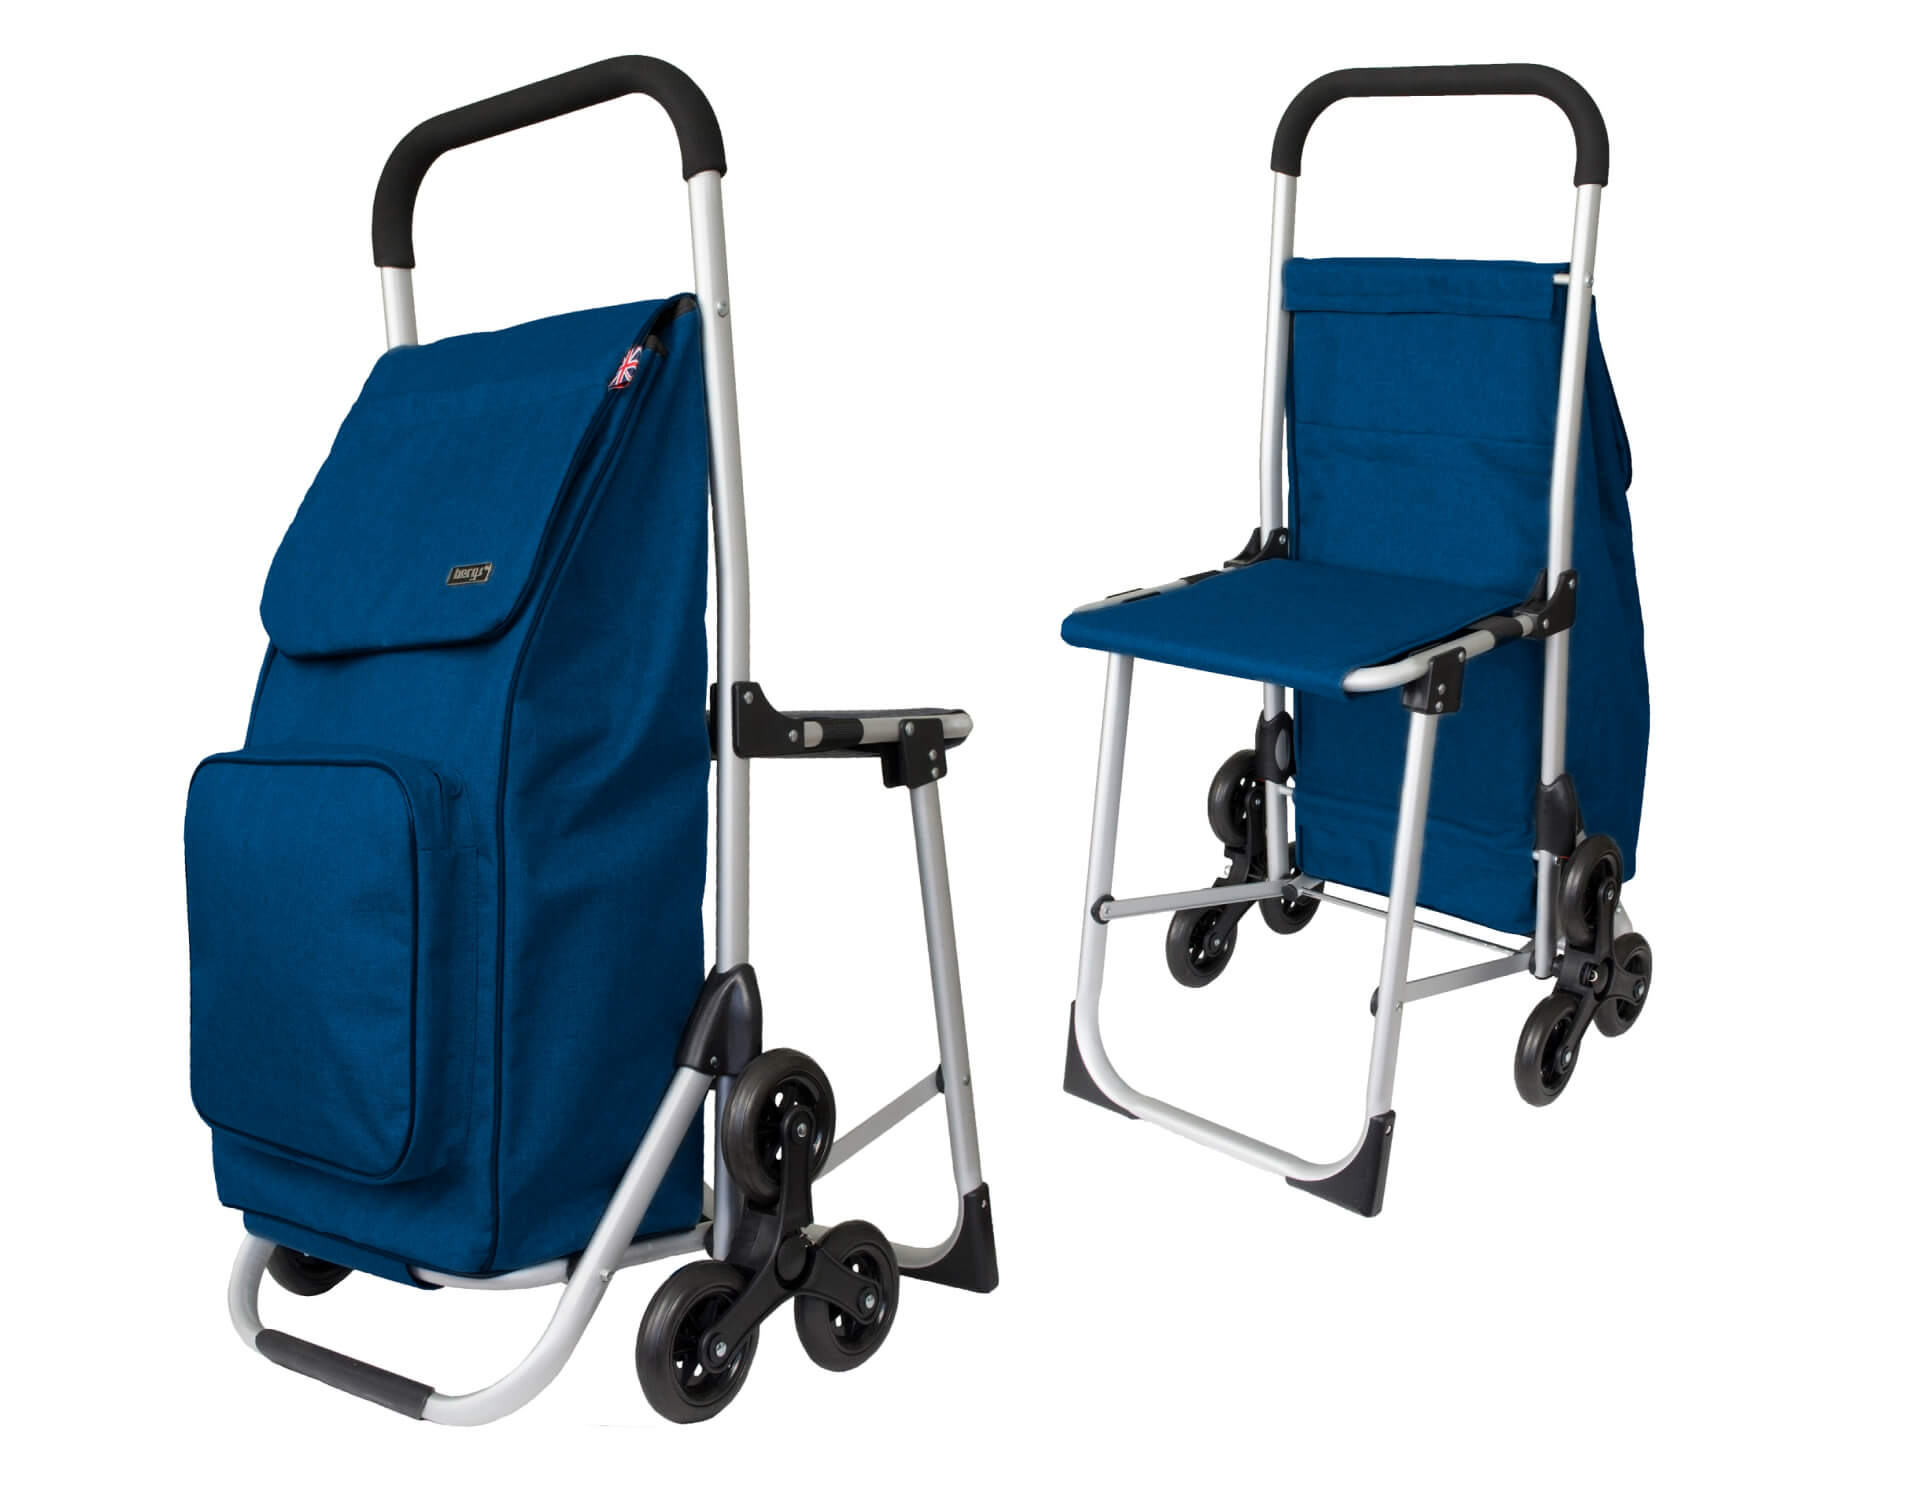 How to unfold your BergsCaddie Seat Trolley